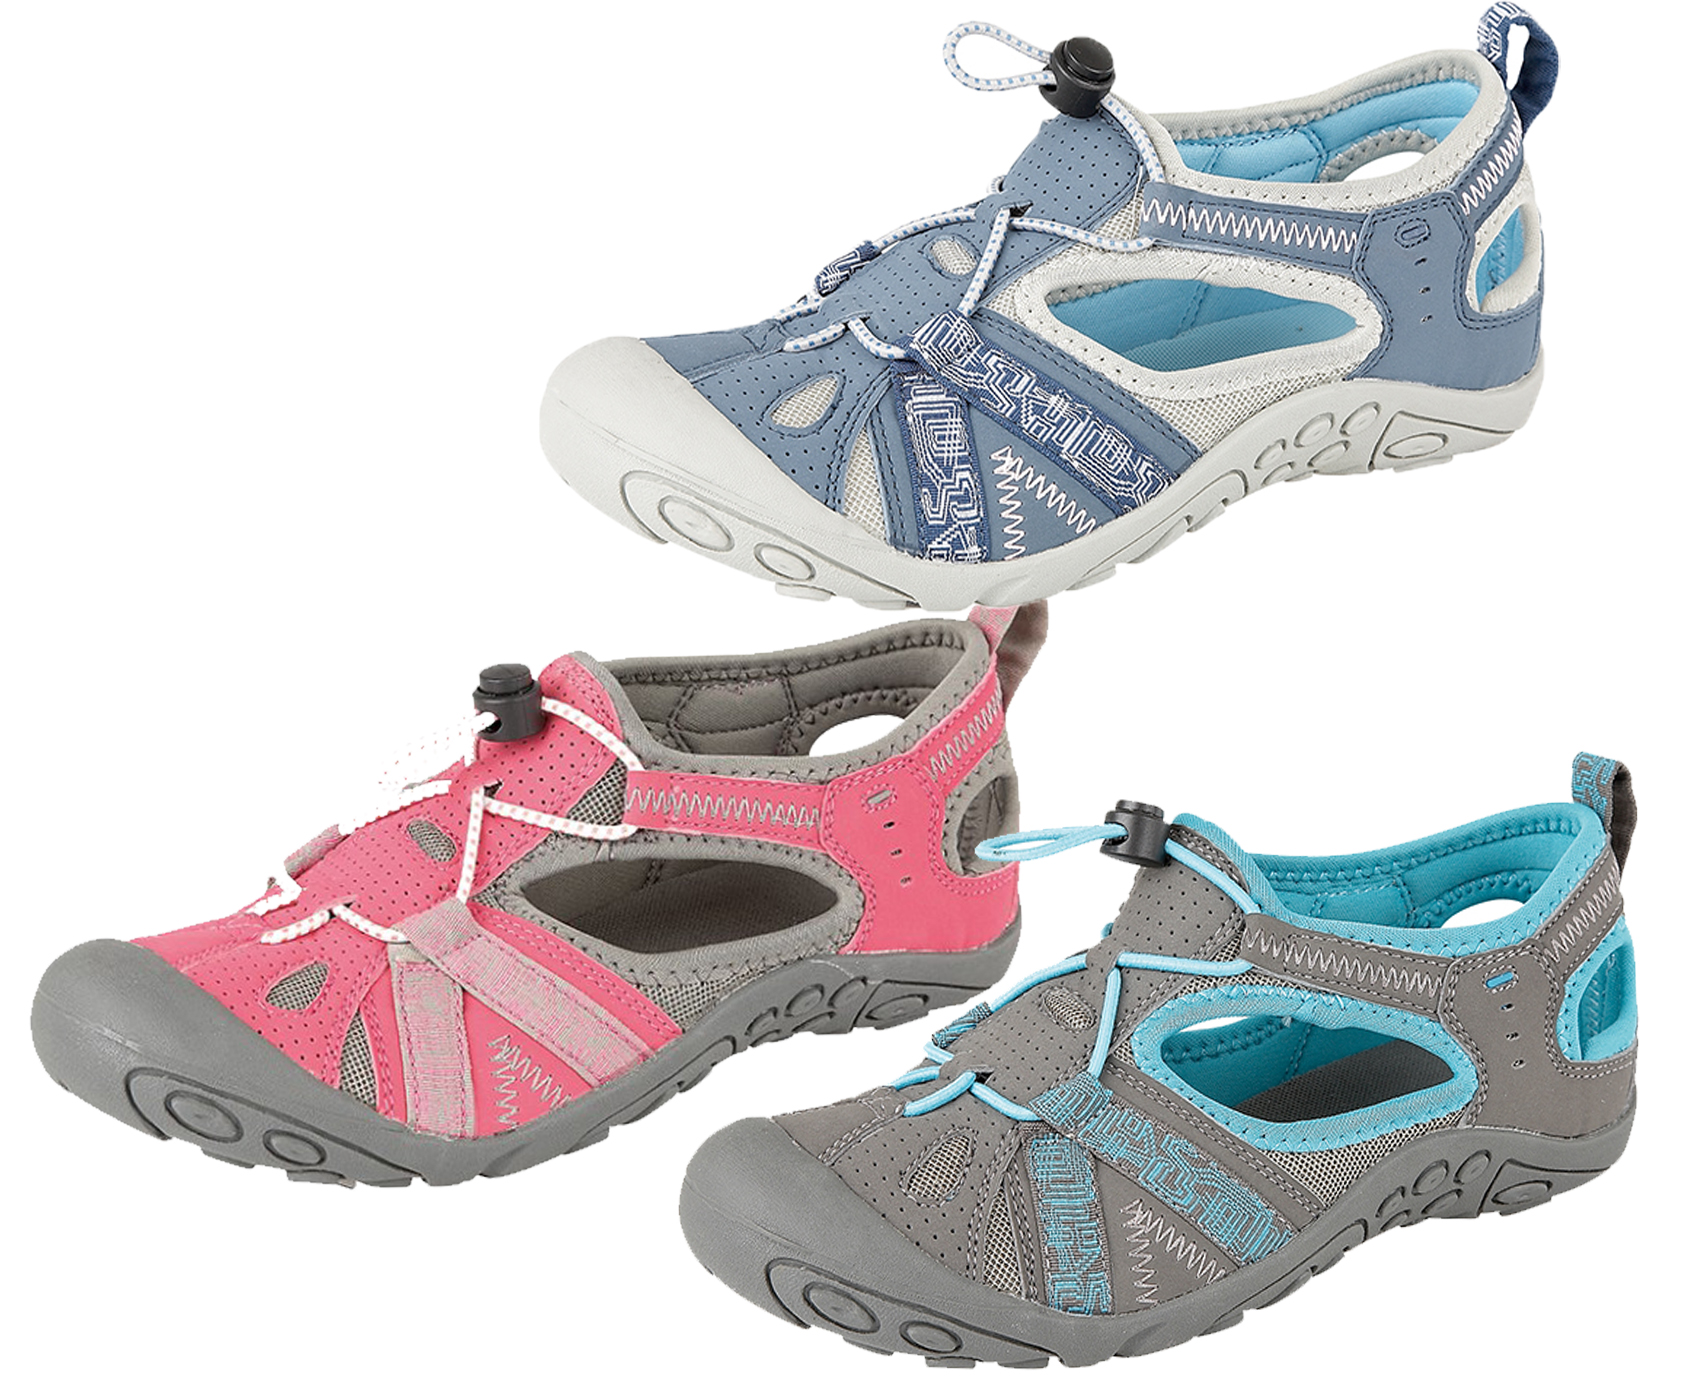 WOMENS NON SLIP WATER PROOF SPORTS ATHLETIC HIKING SANDALS LADIES ...